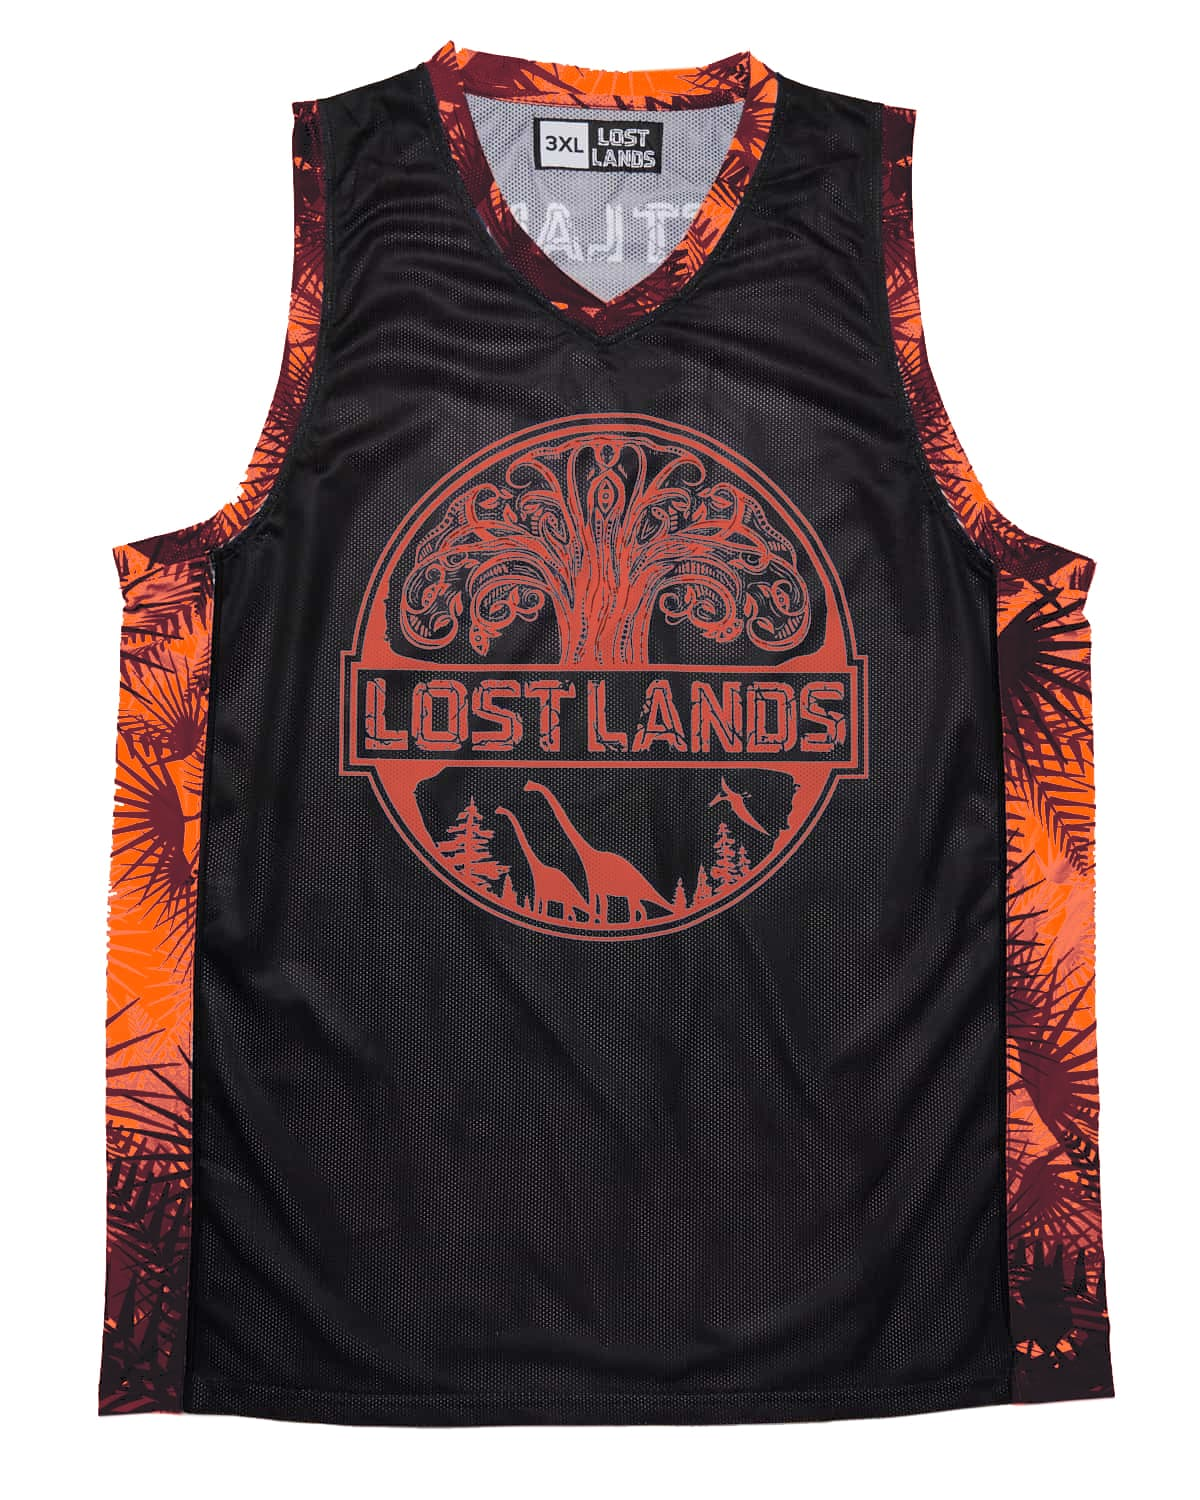 9c7c7f4c90a Lost Lands 2018  Foliage  Basketball Jersey - Black Red